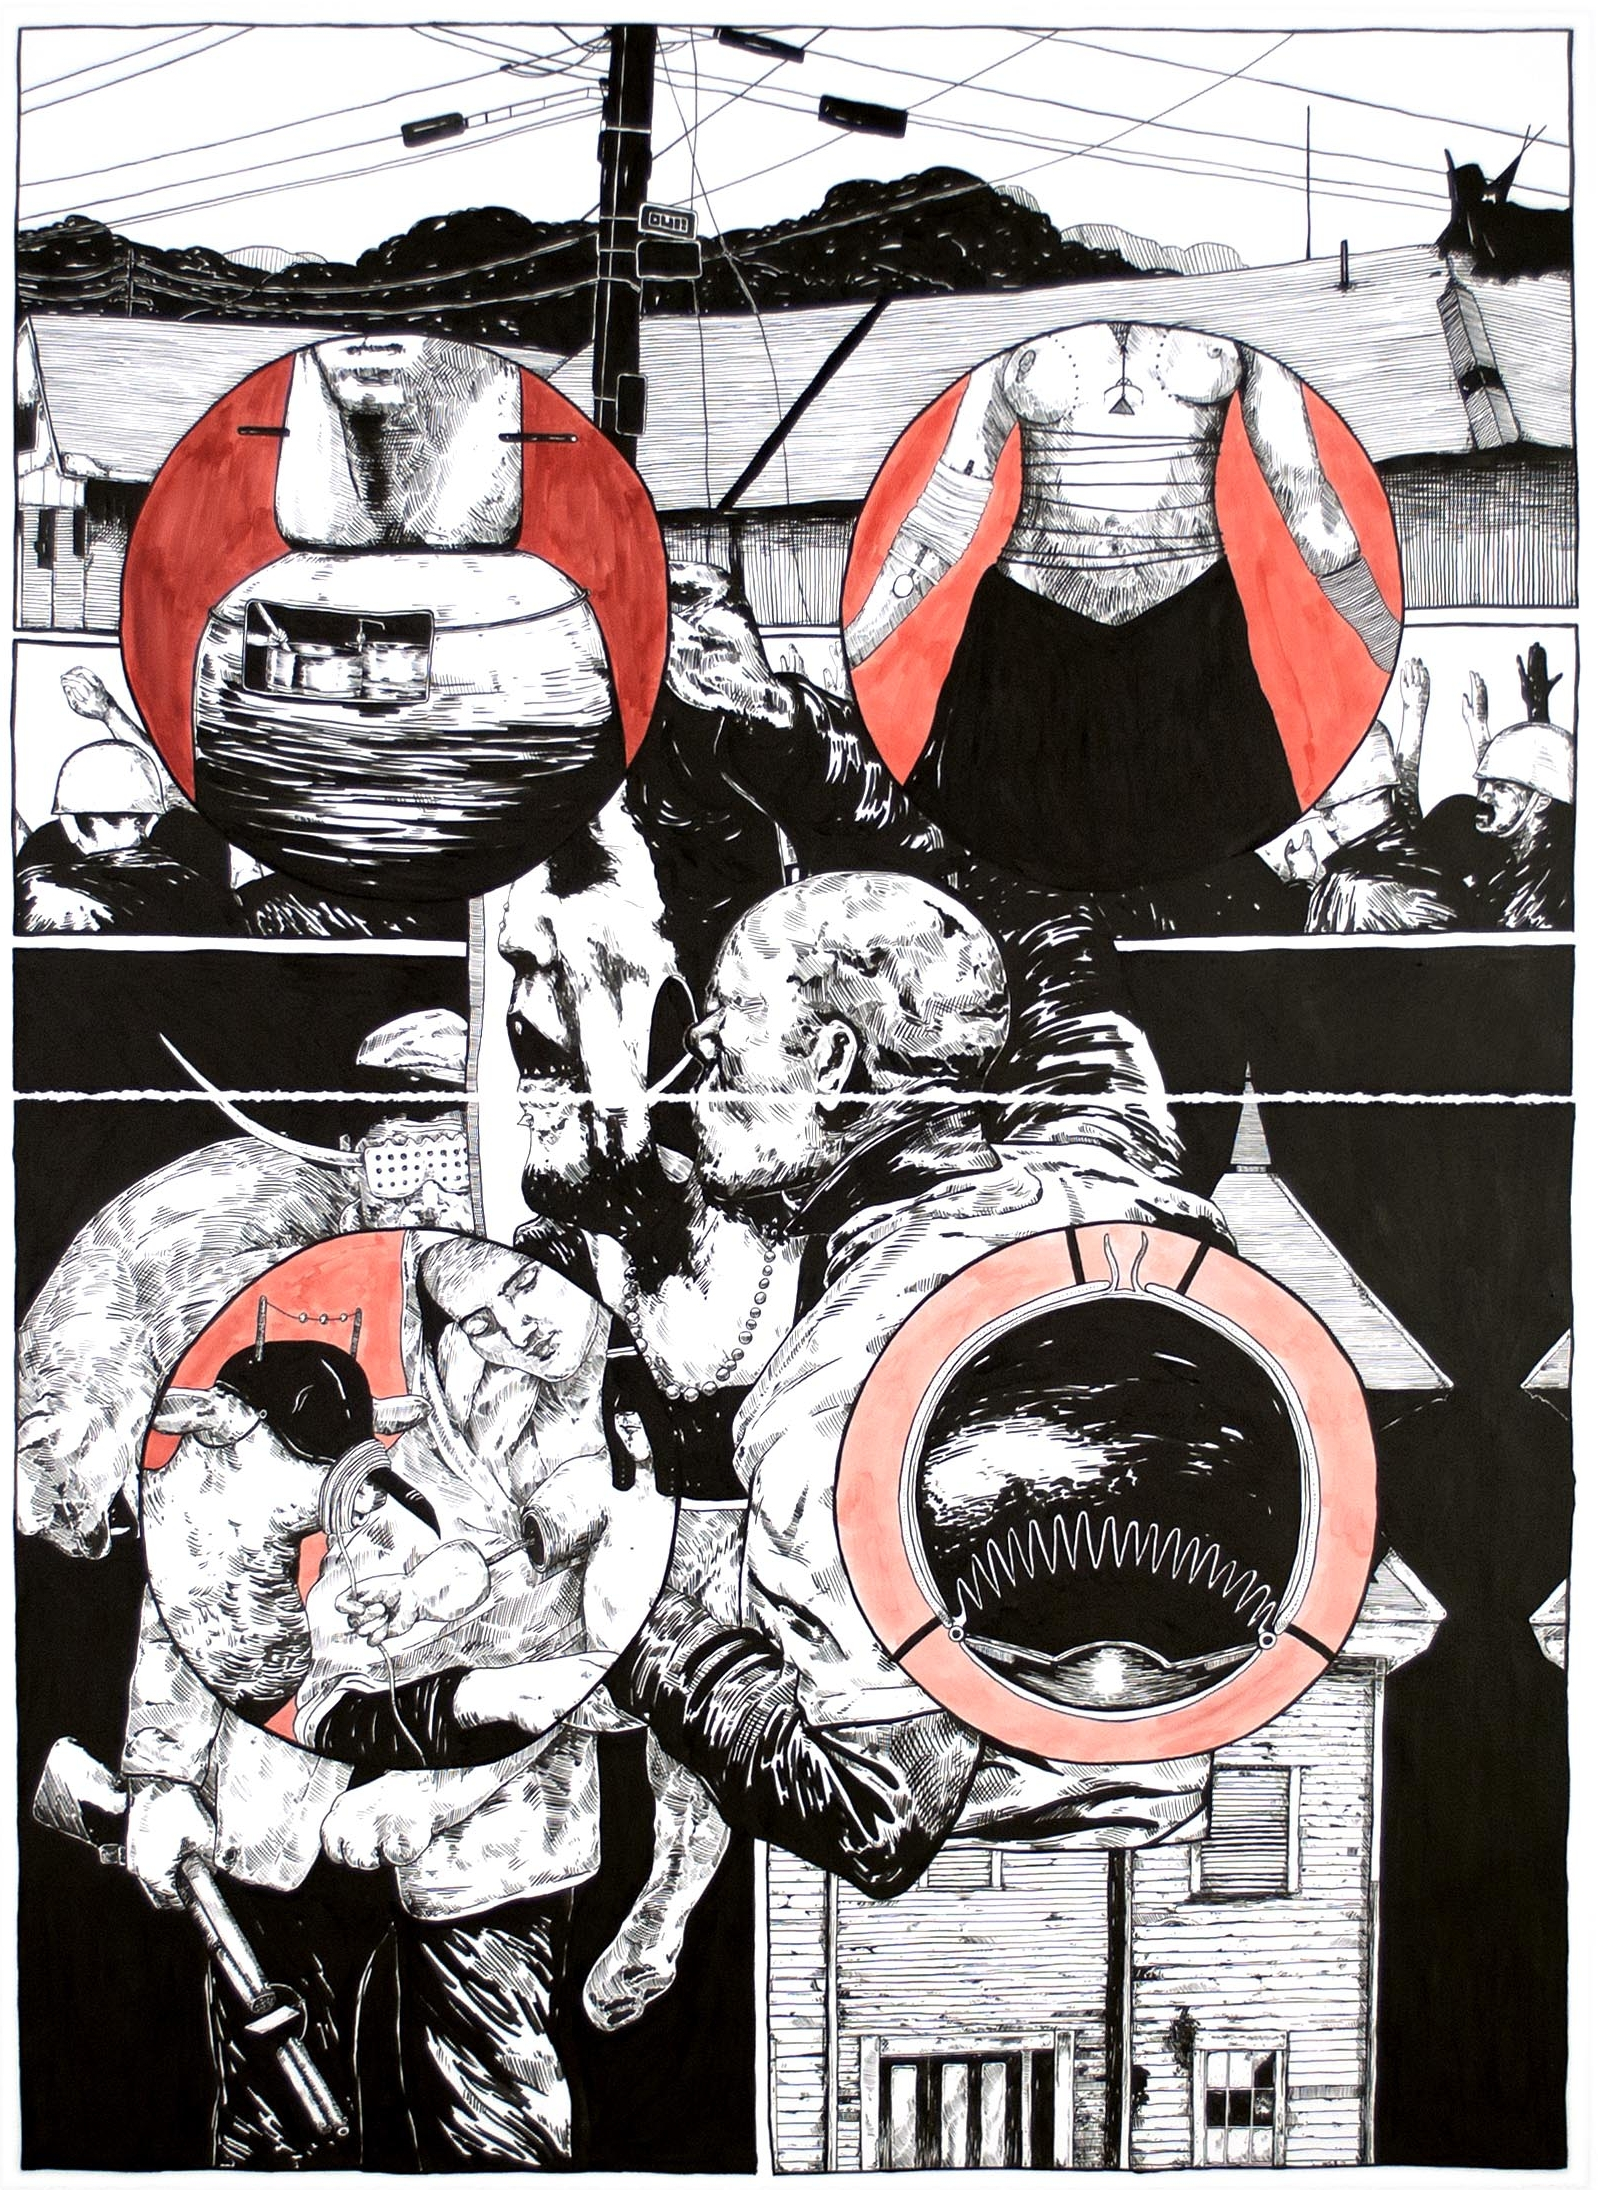 Lower Than the Lowest Animal #5 , 2014 India ink on paper 60 x 44 inches (diptych)